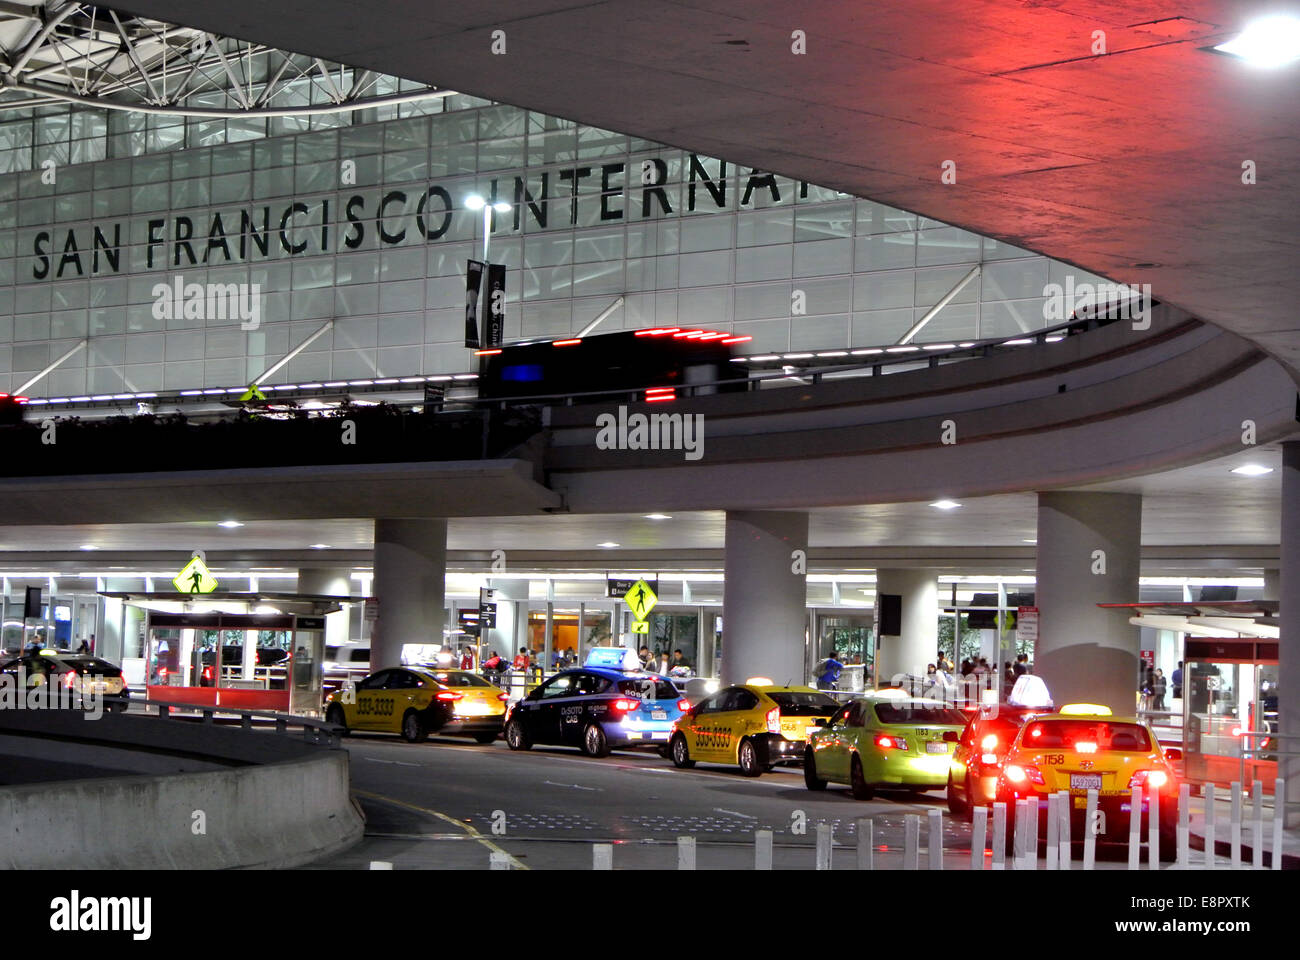 taxicabs line up at arrivals terminals at San Francisco International airport - Stock Image